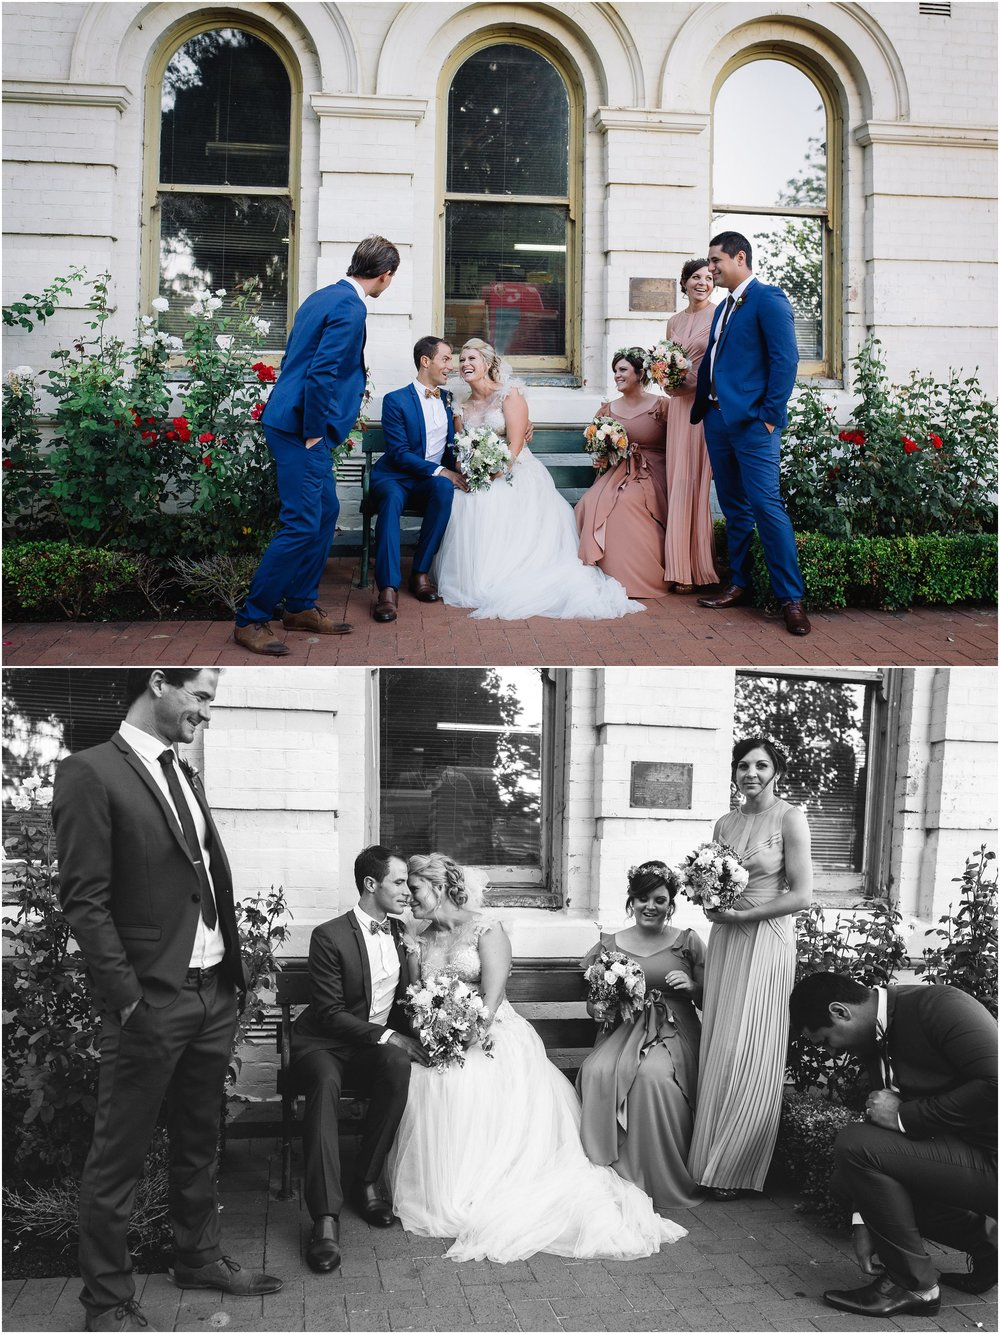 photojournalistic-wedding-photography-perth.jpg